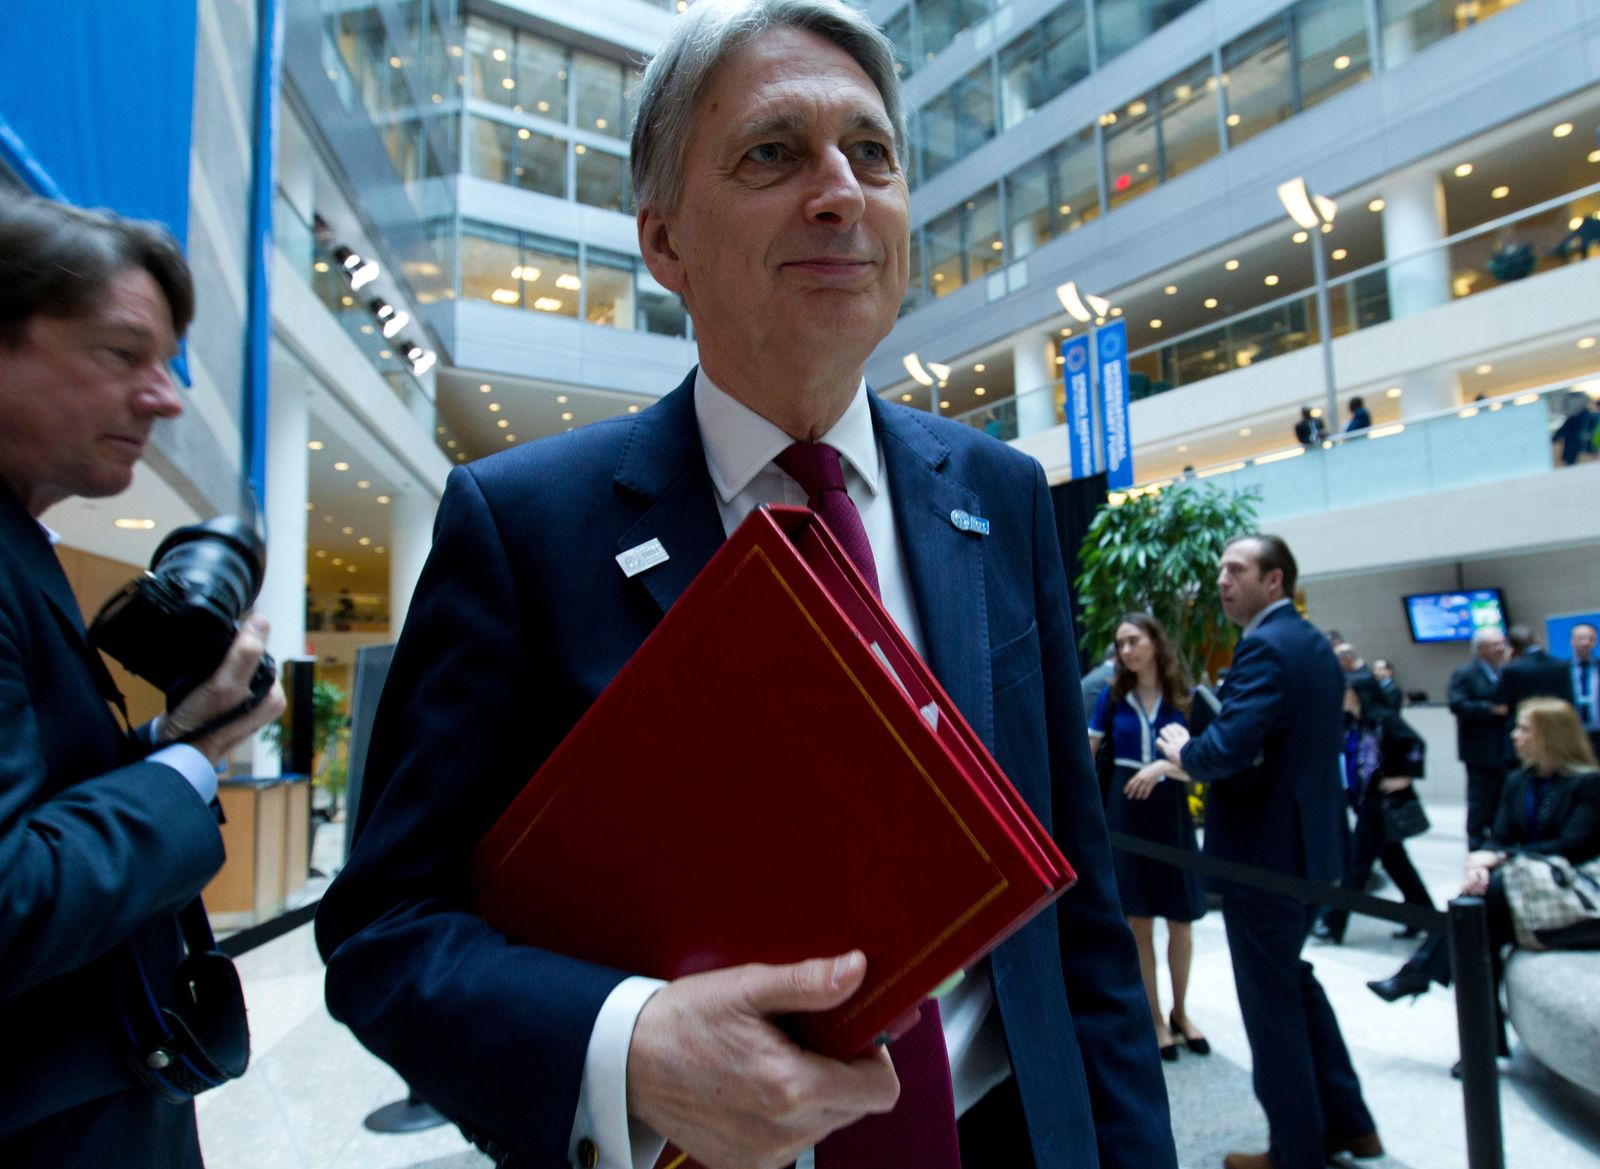 U.K. Chancellor of the Exchequer Philip Hammond attends the International Monetary and Financial Committee (IMFC) conference, at the World Bank/IMF Spring Meetings in Washington, Saturday, April 13, 2019. (AP Photo/Jose Luis Magana)